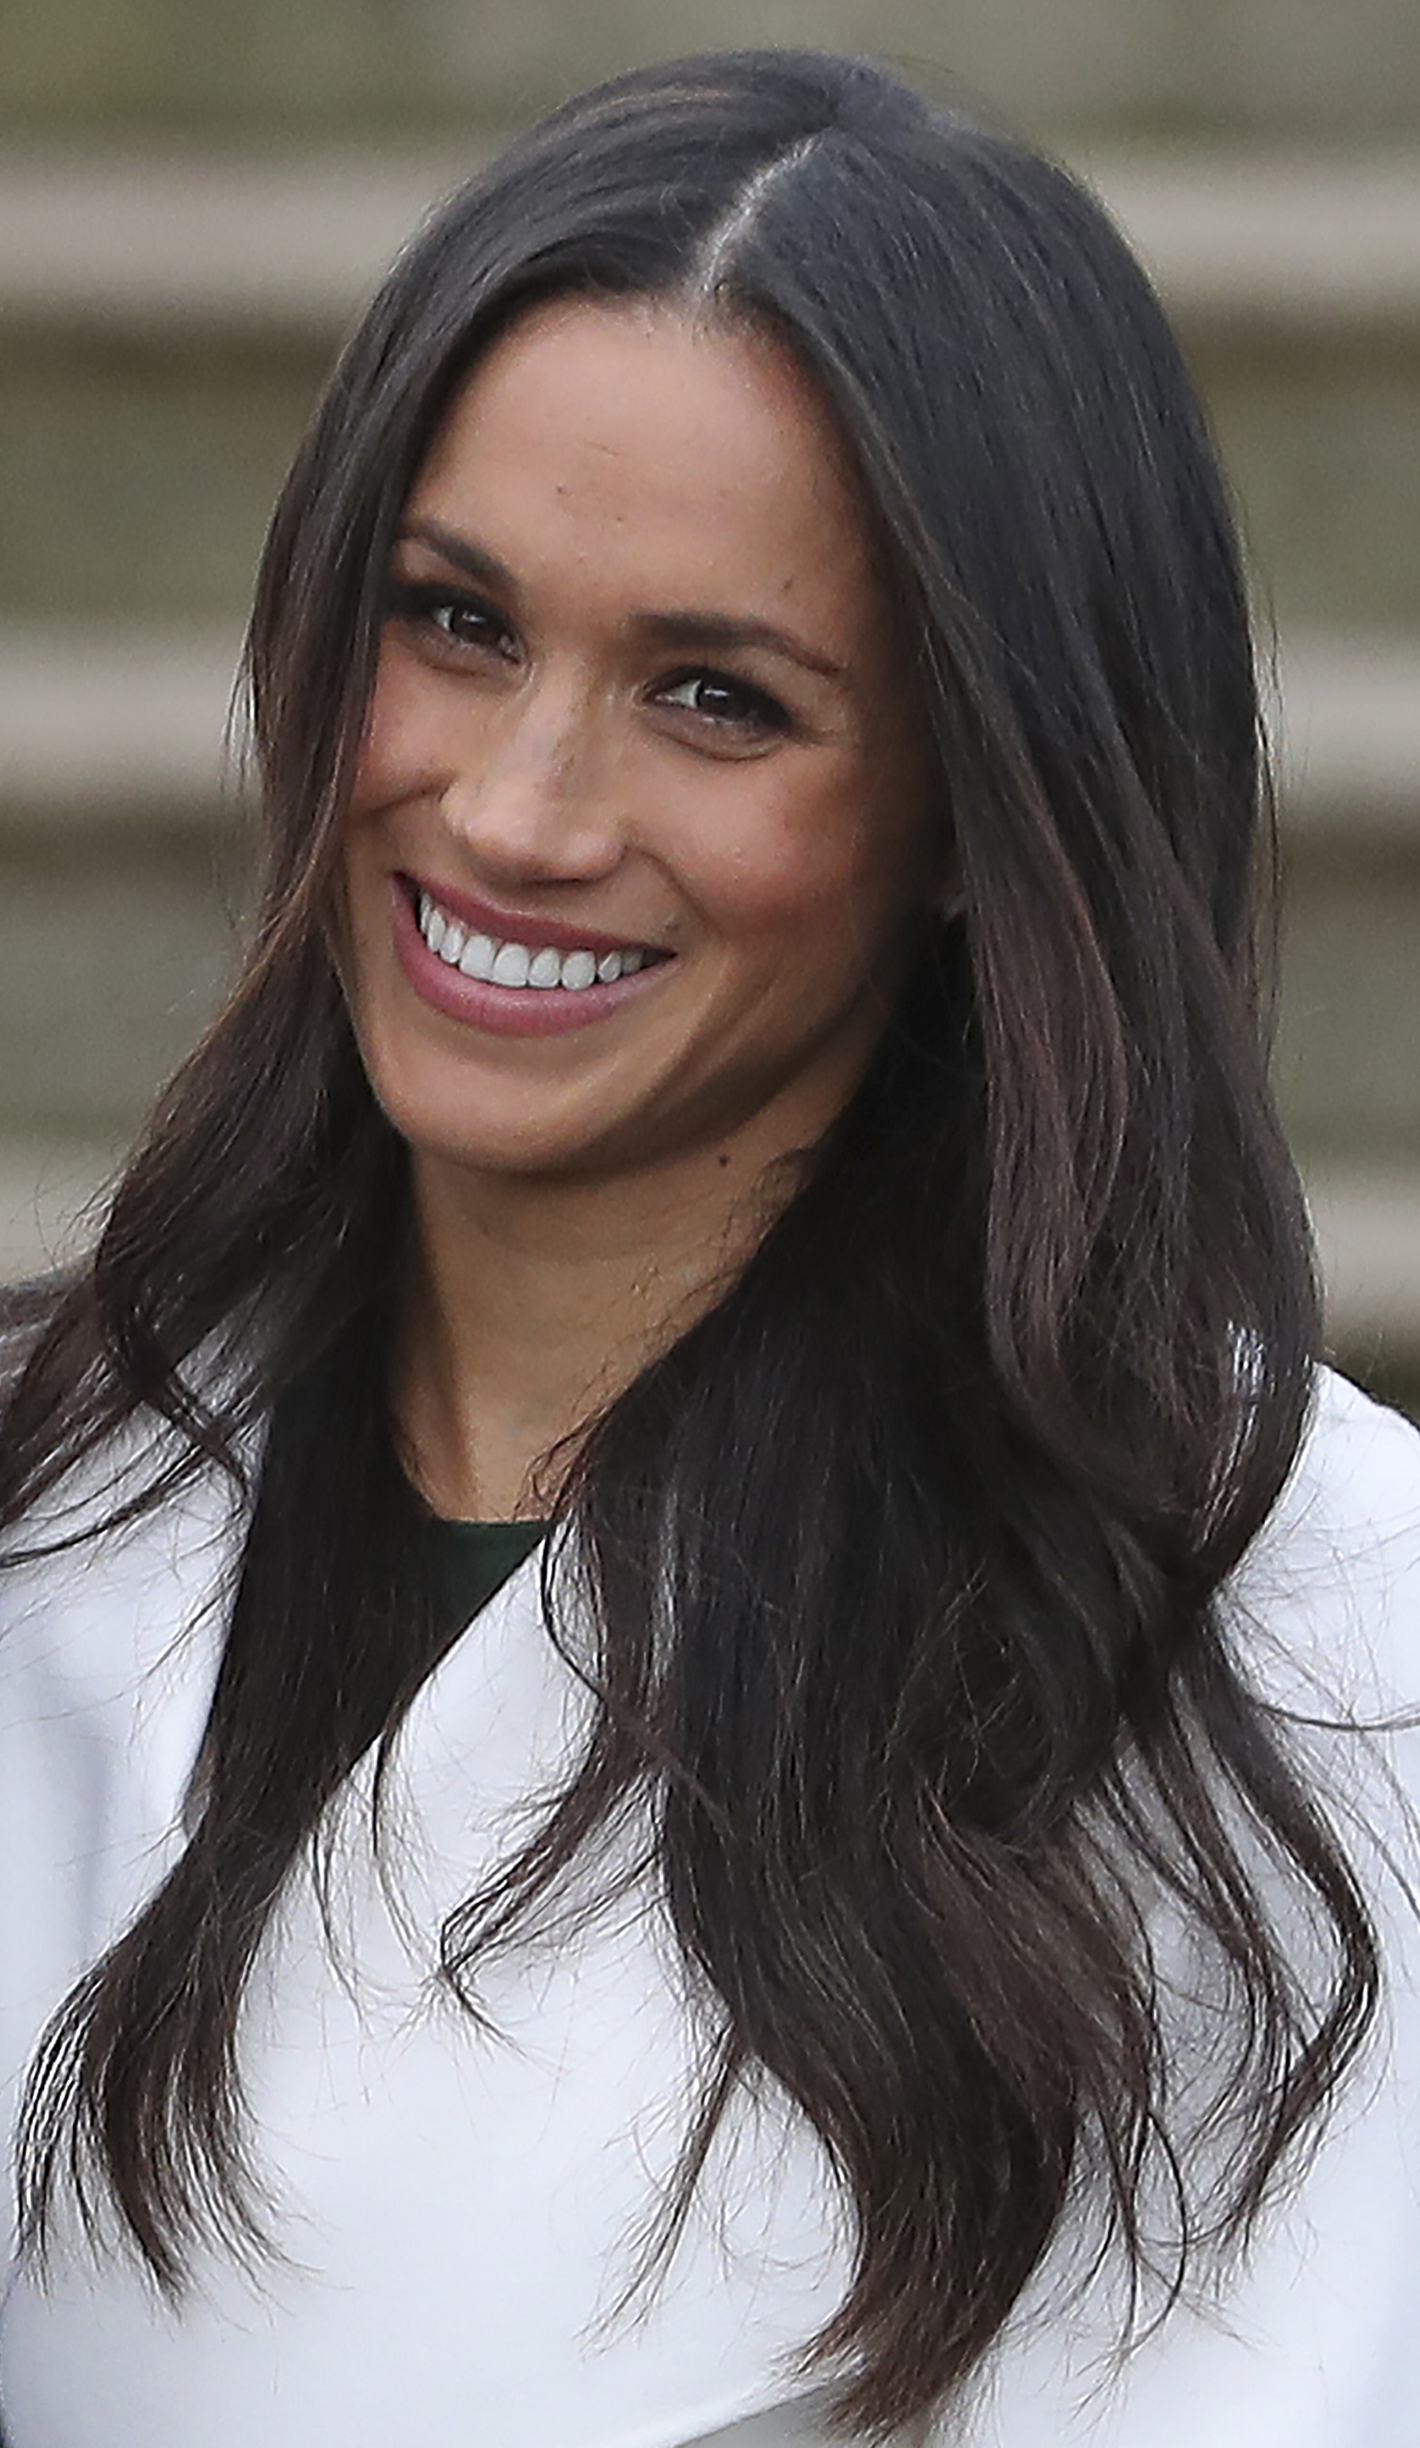 Meghan Markle S Secret Blog Reveals Her Struggles To